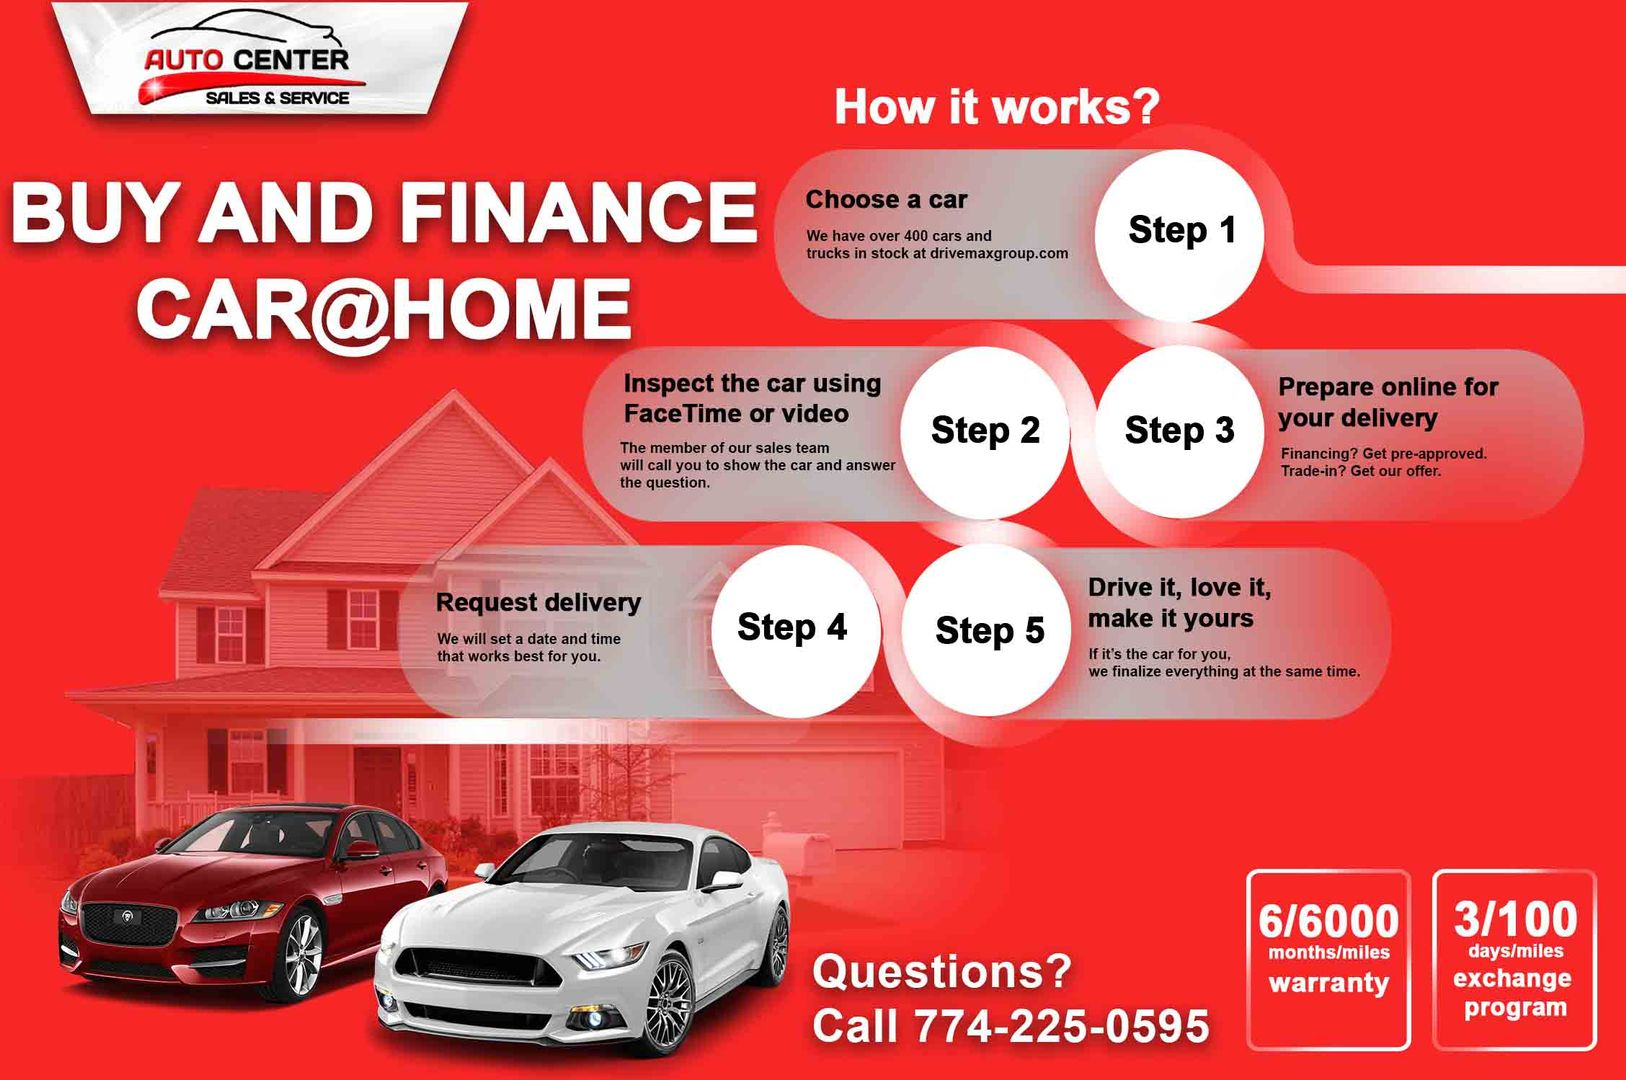 Buy and Finance Car at Home - Auto Center Sales & Service